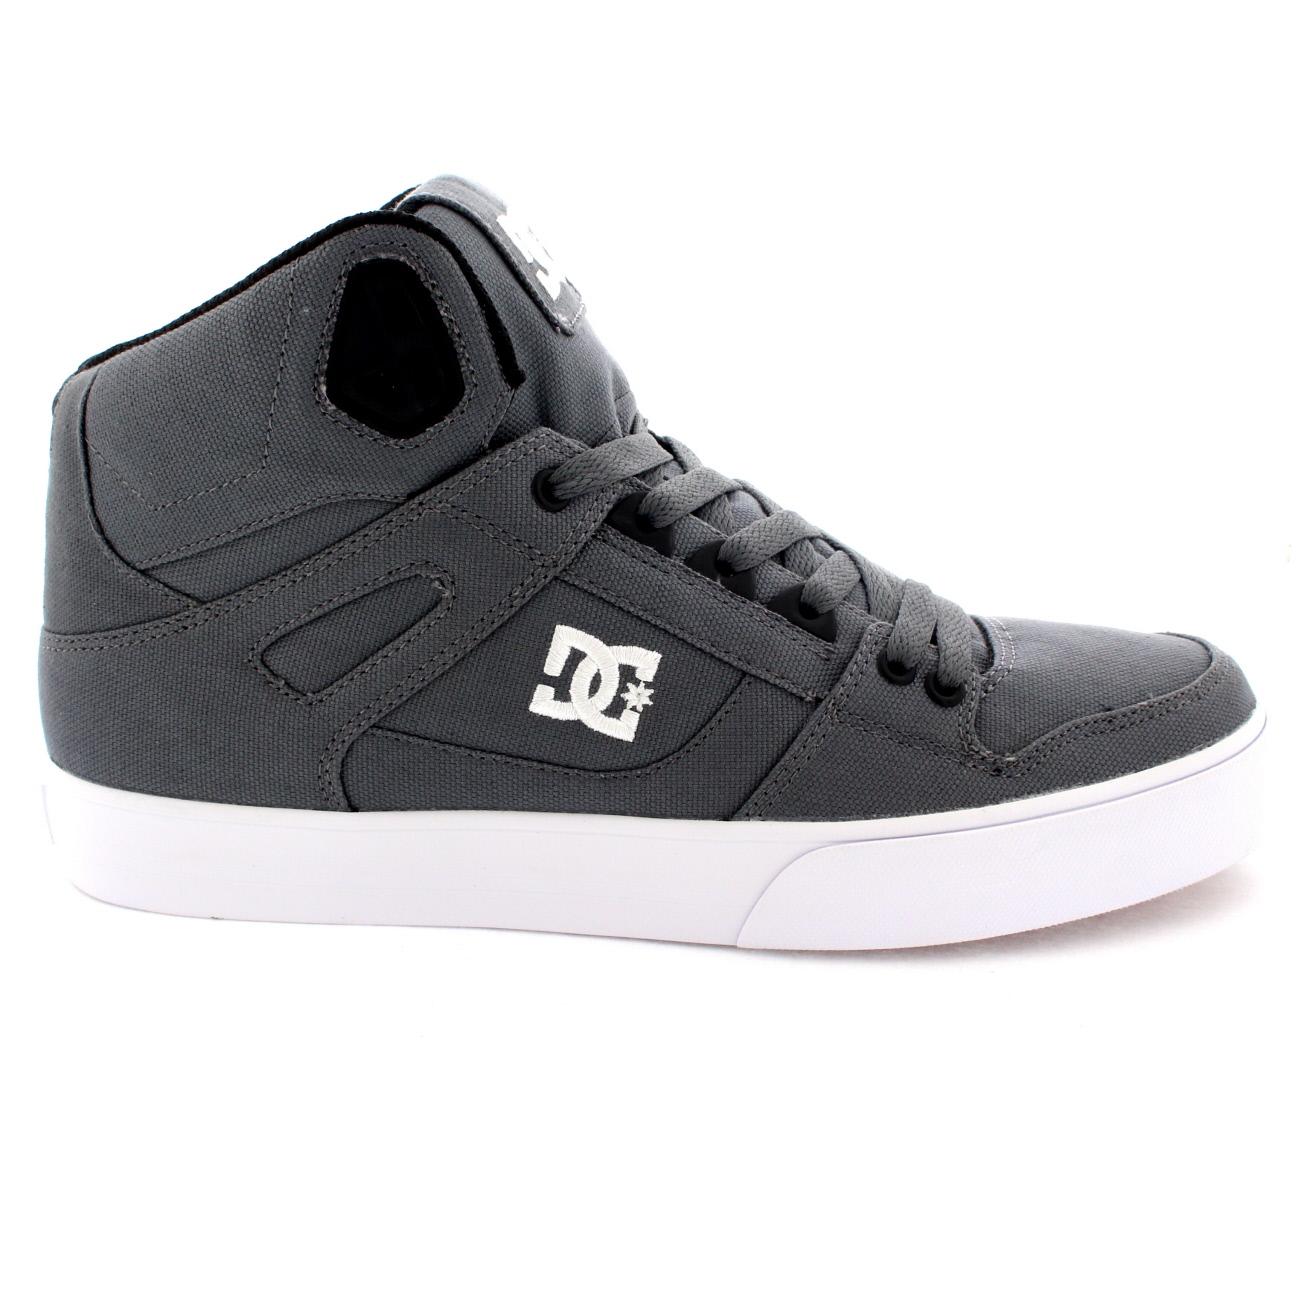 View all mens footwear Grab a pair of our awesome men's skate shoes and get on your board. From huge brands such as Airwalk, Nike and others, our men's skate shoes are ideal for any age group and ability. Avoid ripping those jeans whilst practising and take a glance at our men.